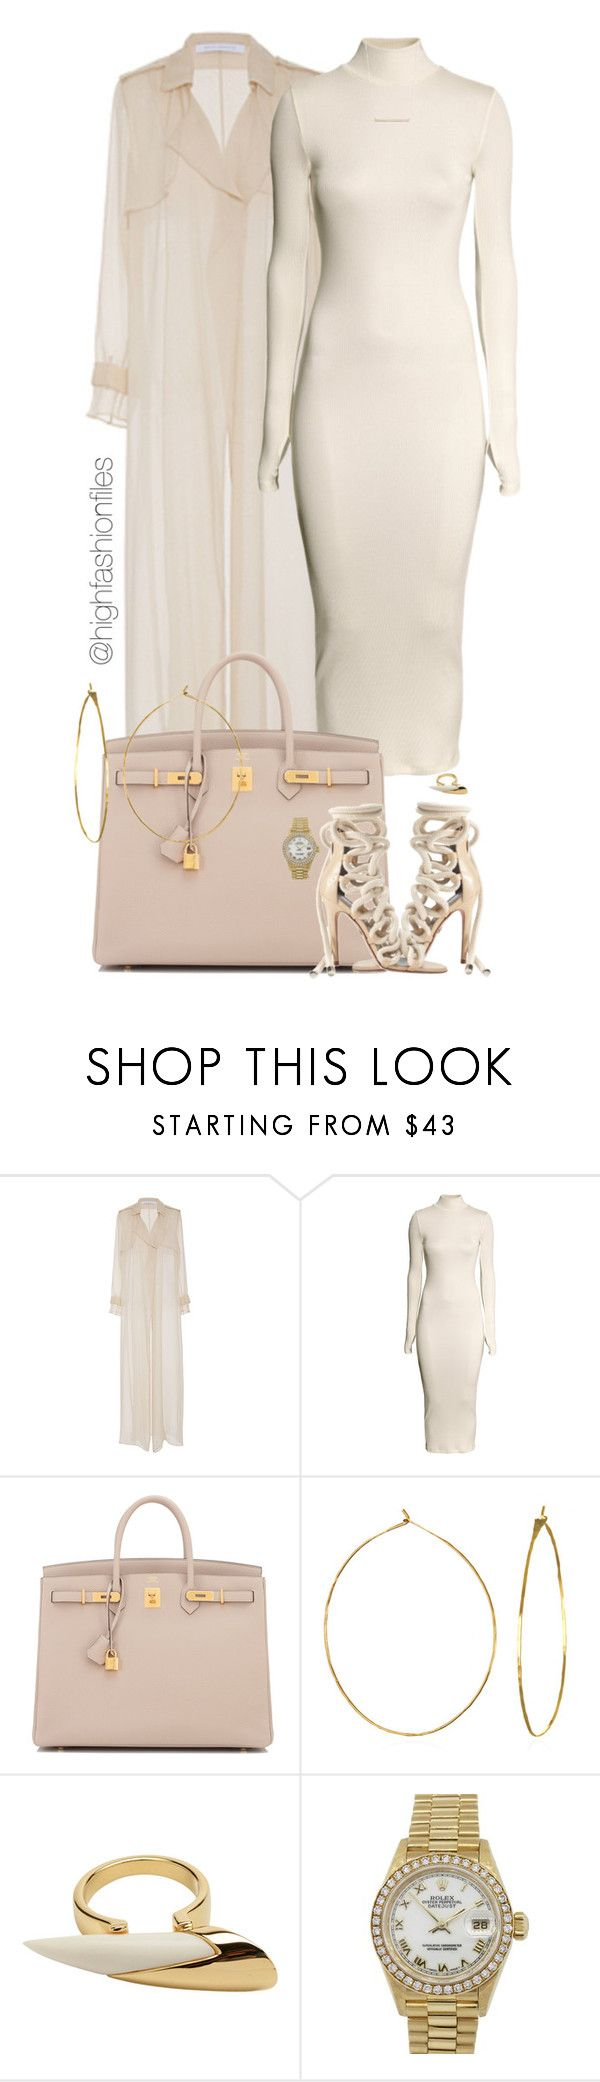 """""""Untitled #2769"""" by highfashionfiles ❤ liked on Polyvore featuring Sally Lapointe, H&M, Hermès, Phyllis + Rosie, Maiyet, Rolex and Sydney Evan"""